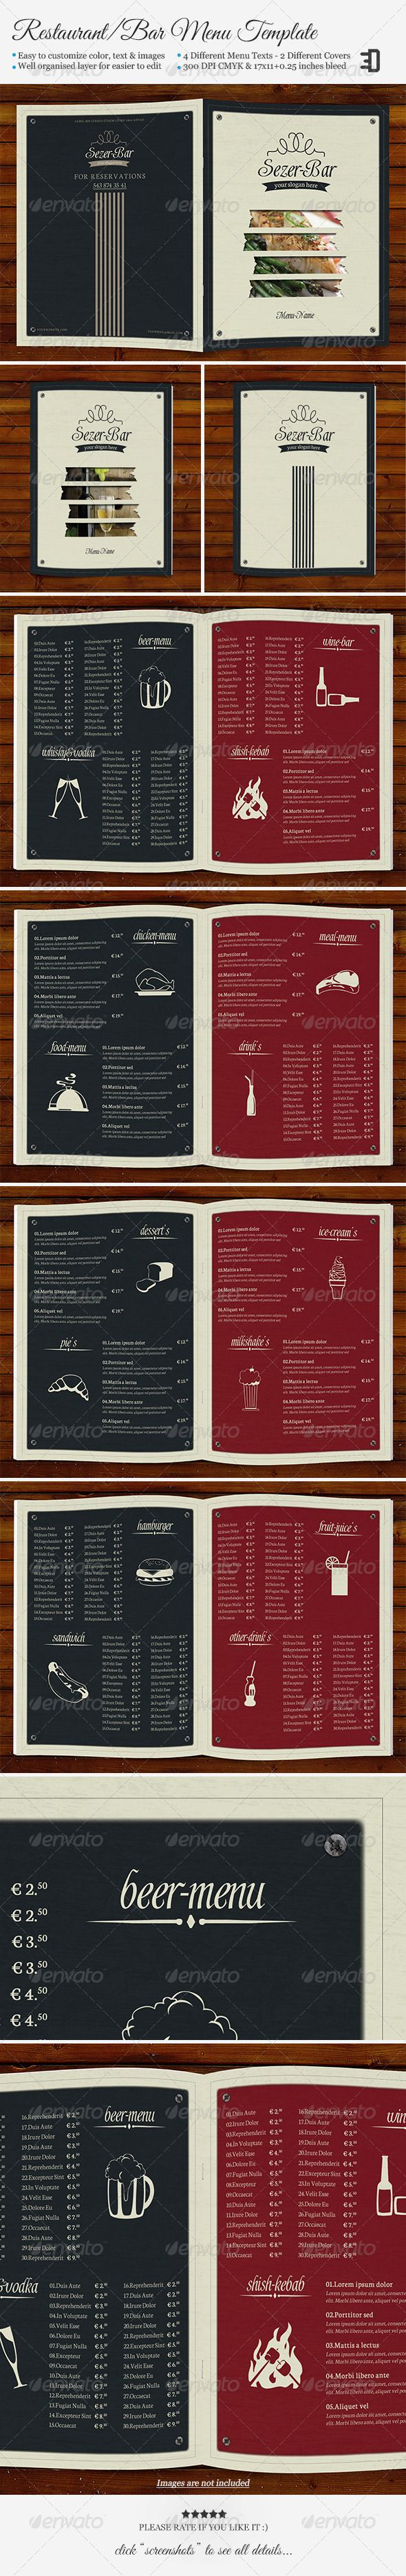 RestaurantBar Menu Template Graphicriver Features  Psd Files